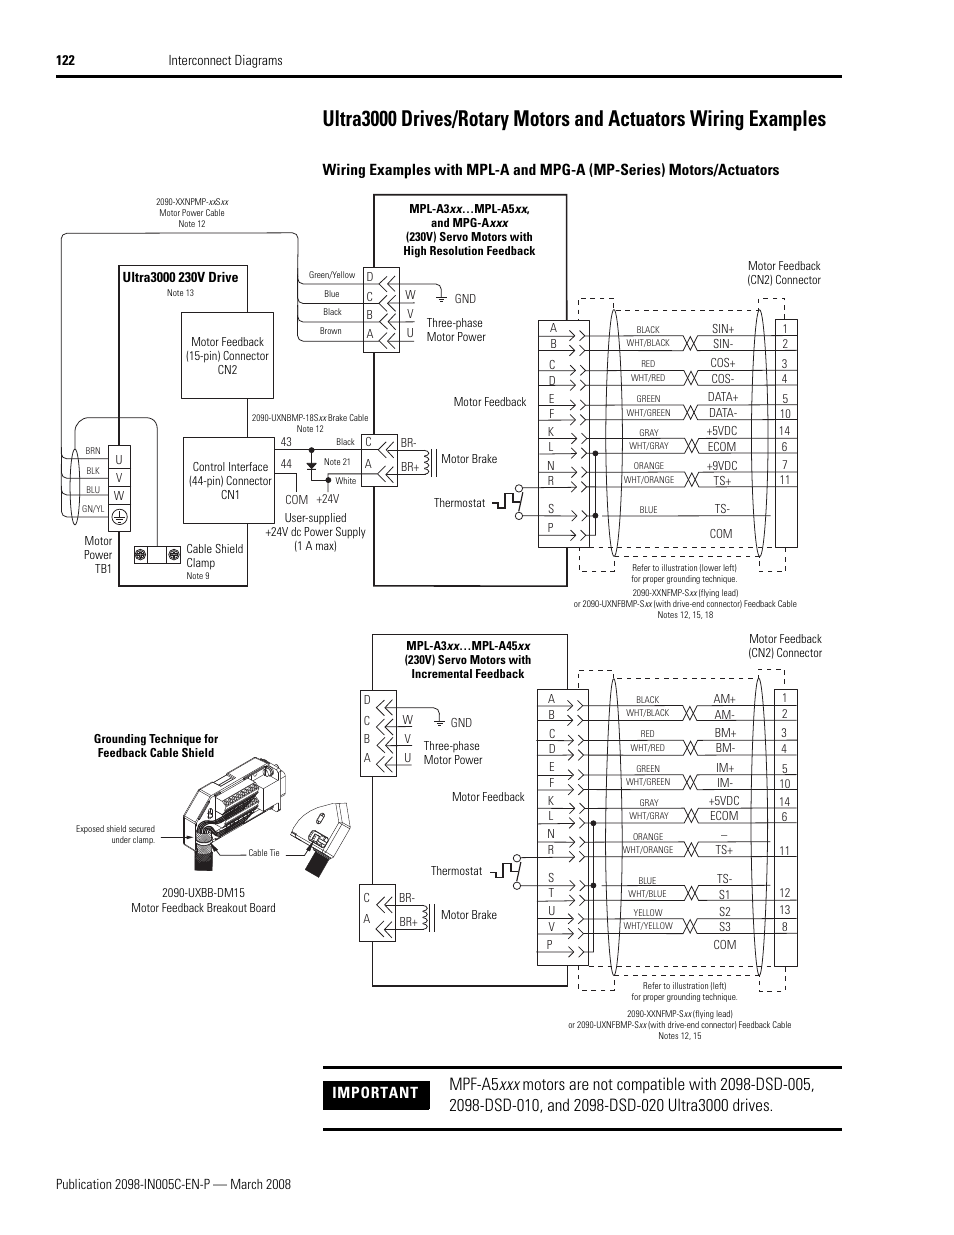 Servo Drive Wiring Electrical Diagrams Diagram Ultra3000 Drives Rotary Motors And Actuators Examples Omron